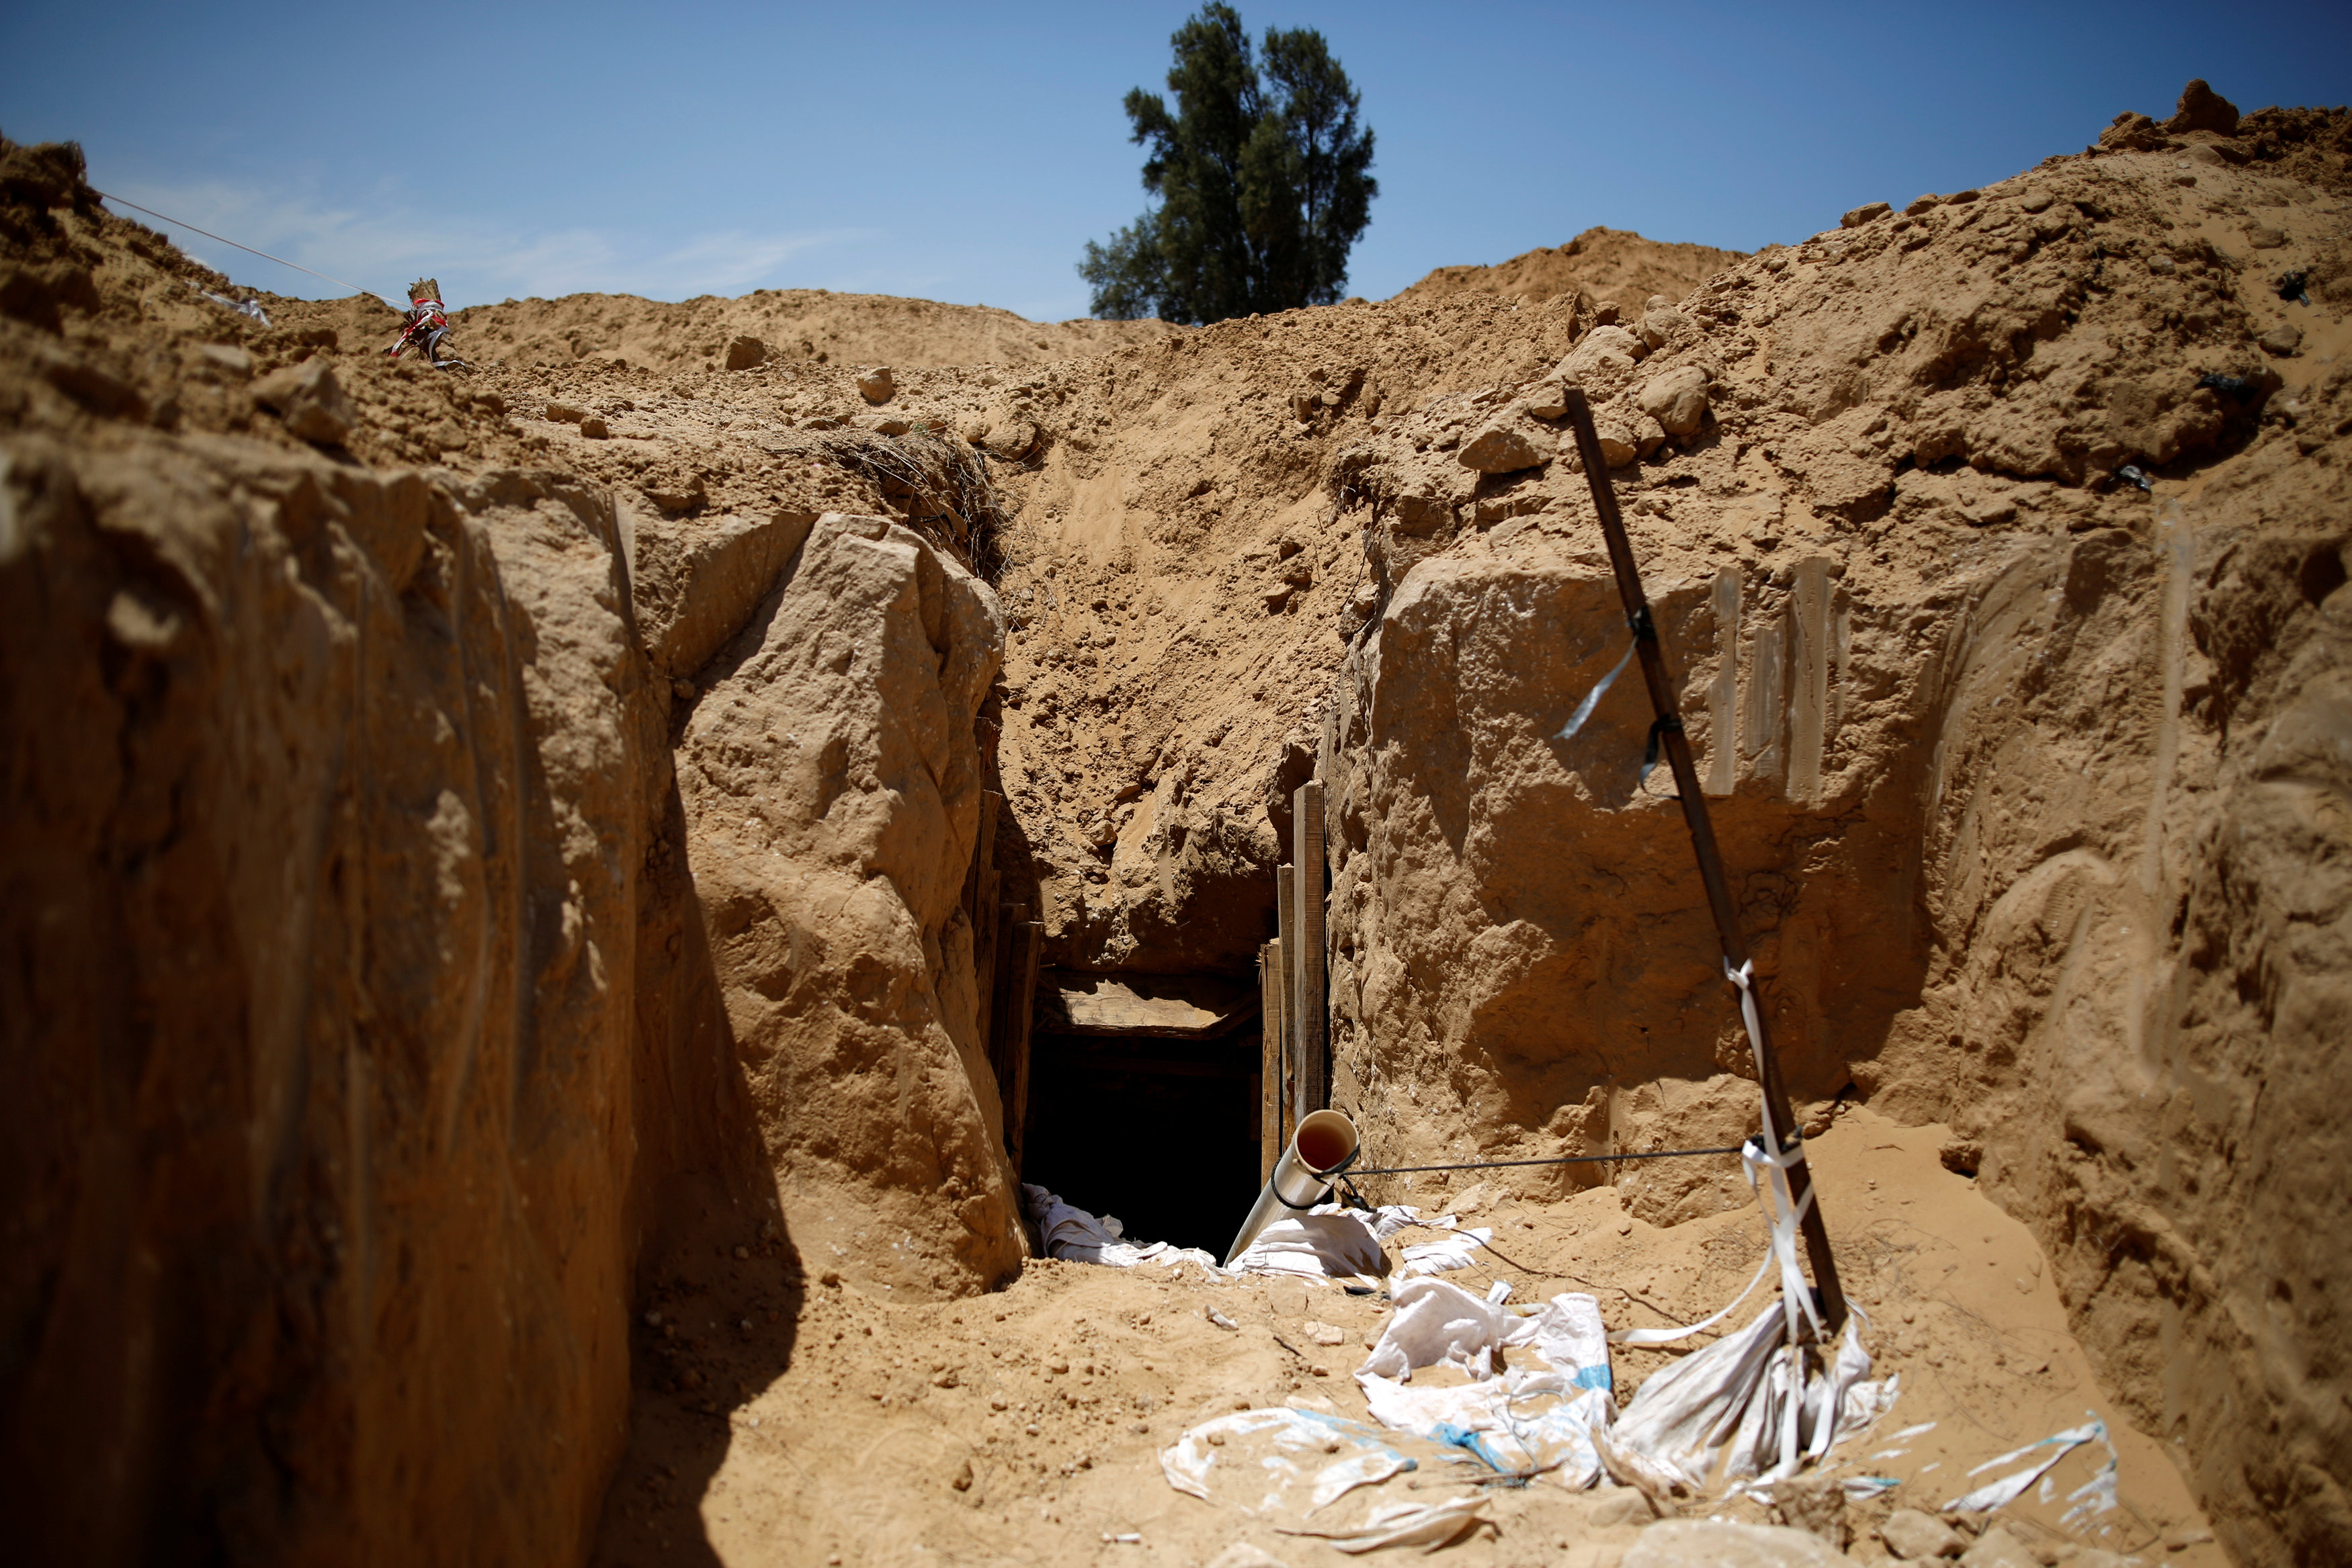 An entrance to a tunnel which Israel's military said it had discovered is seen just outside the southern Gaza Strip